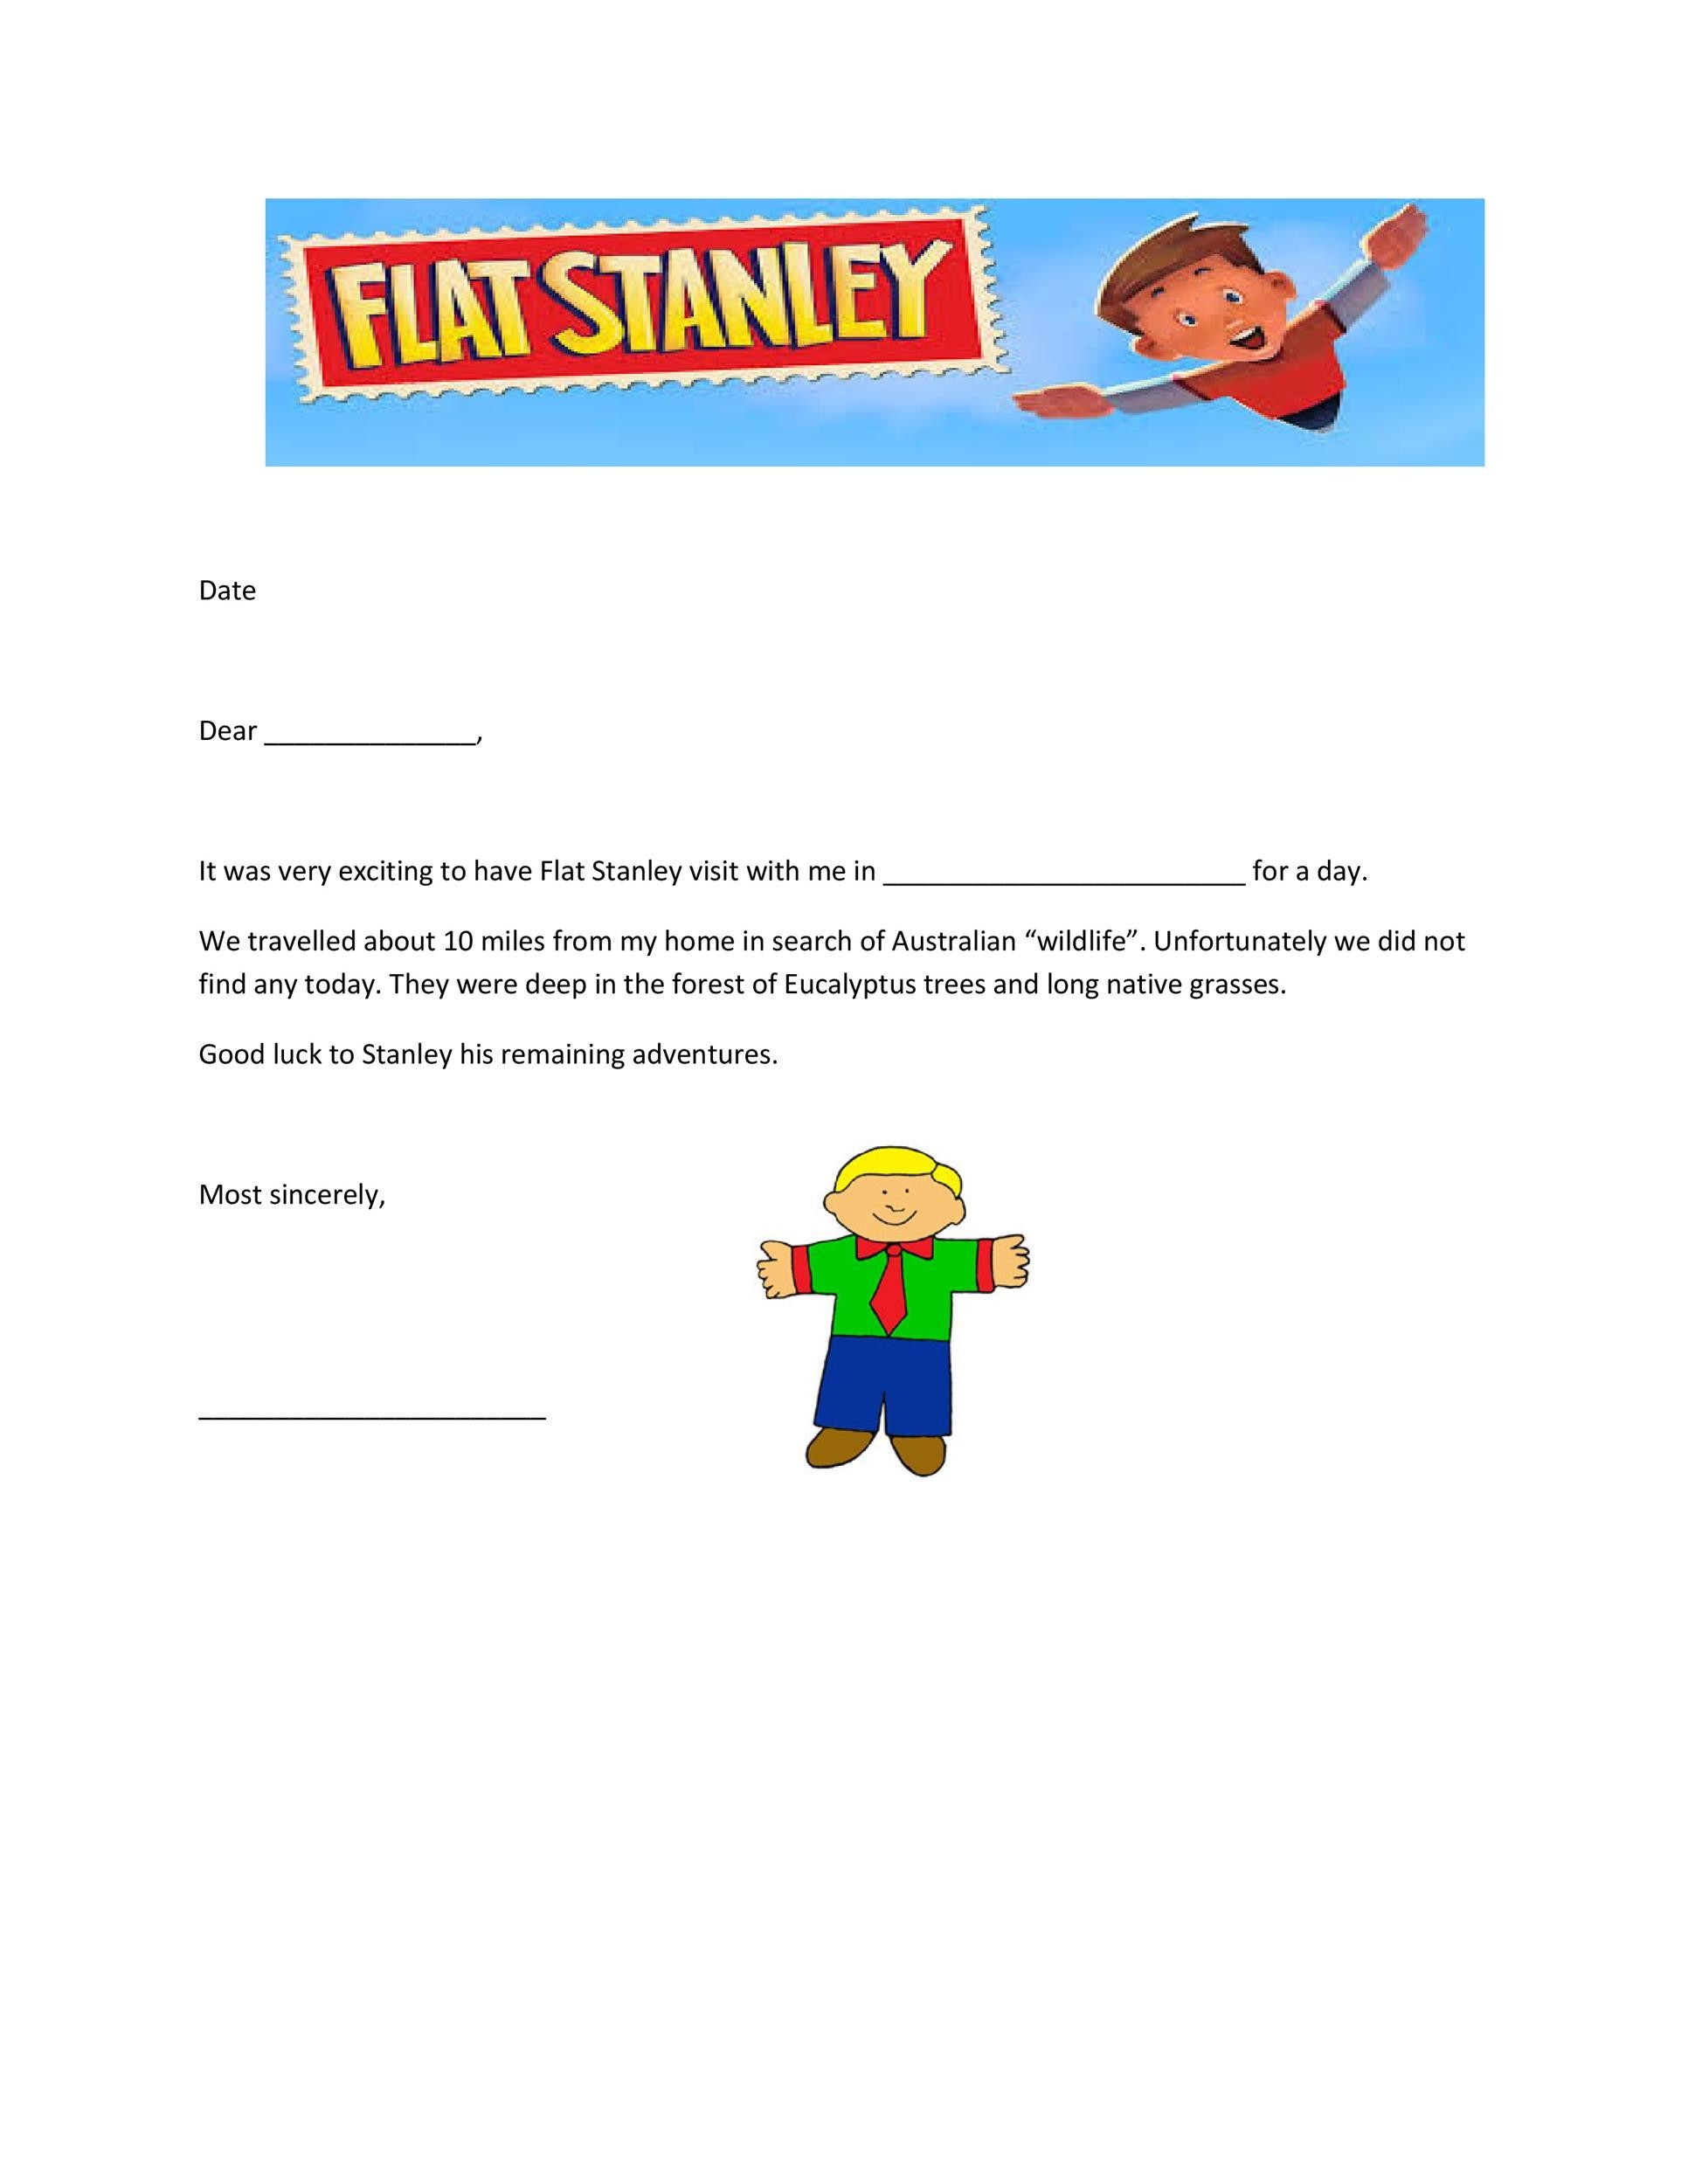 picture about Flat Stanley Printable Templates known as 37 Flat Stanley Templates Letter Illustrations ᐅ Template Lab